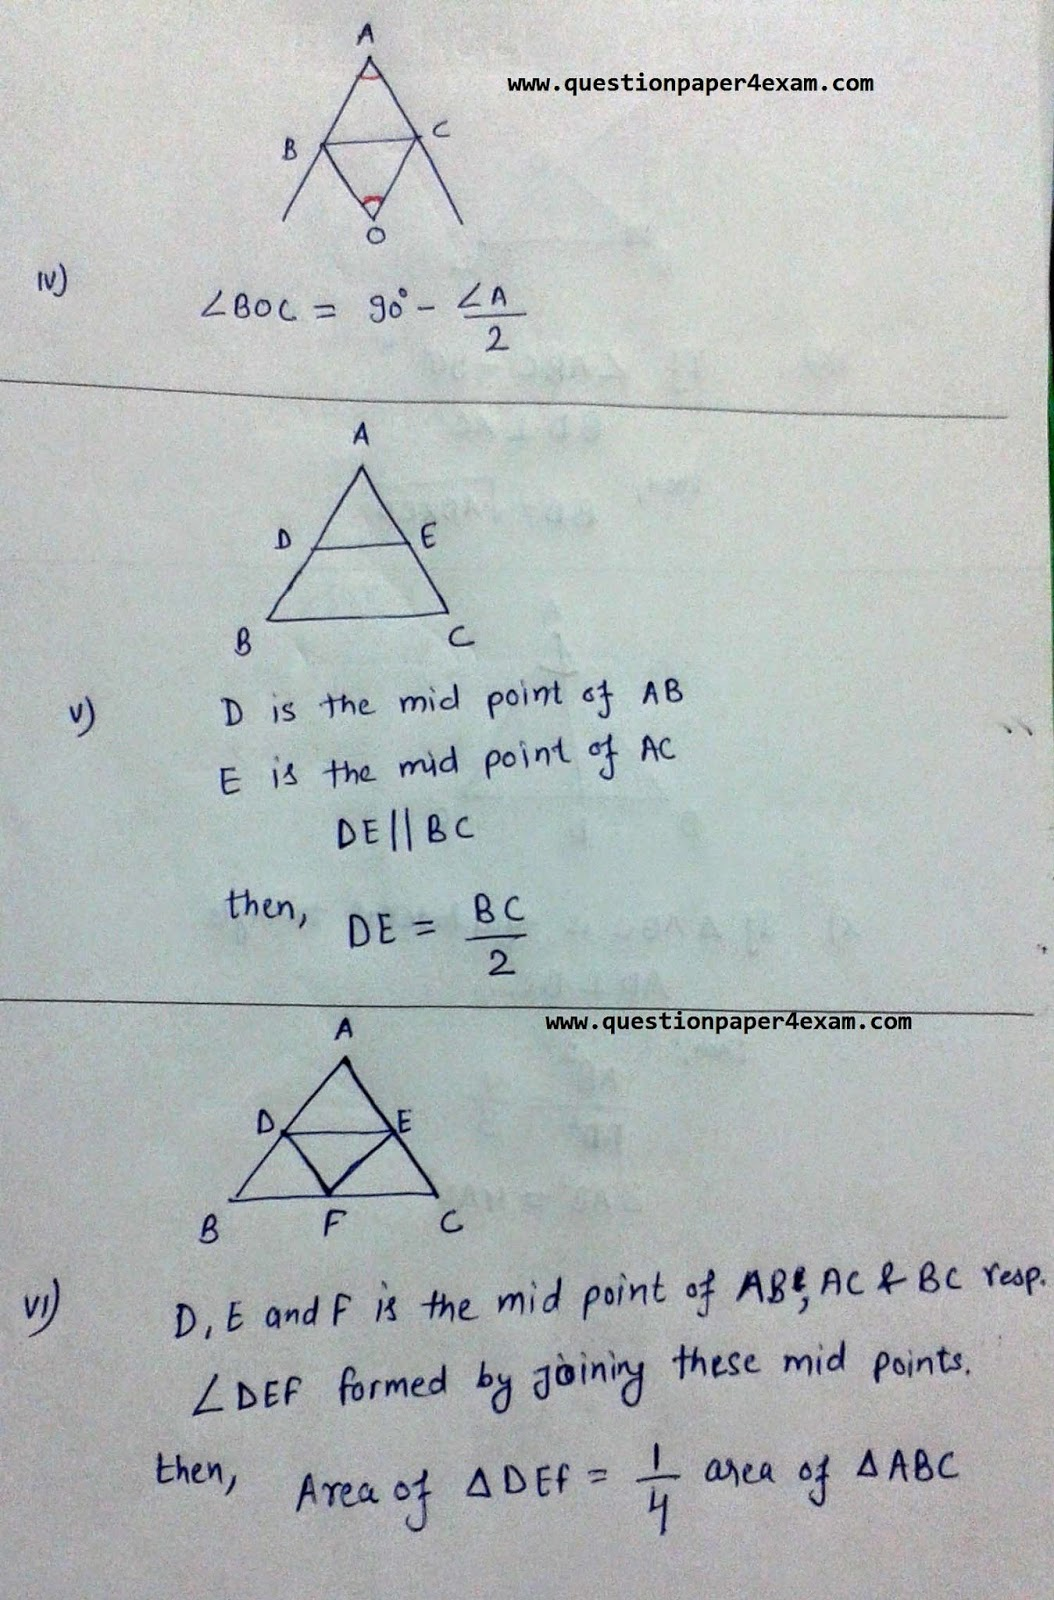 TRIANGLE PROPERTIES HELPFUL IN SSC EXAMS | QUESTION PAPER